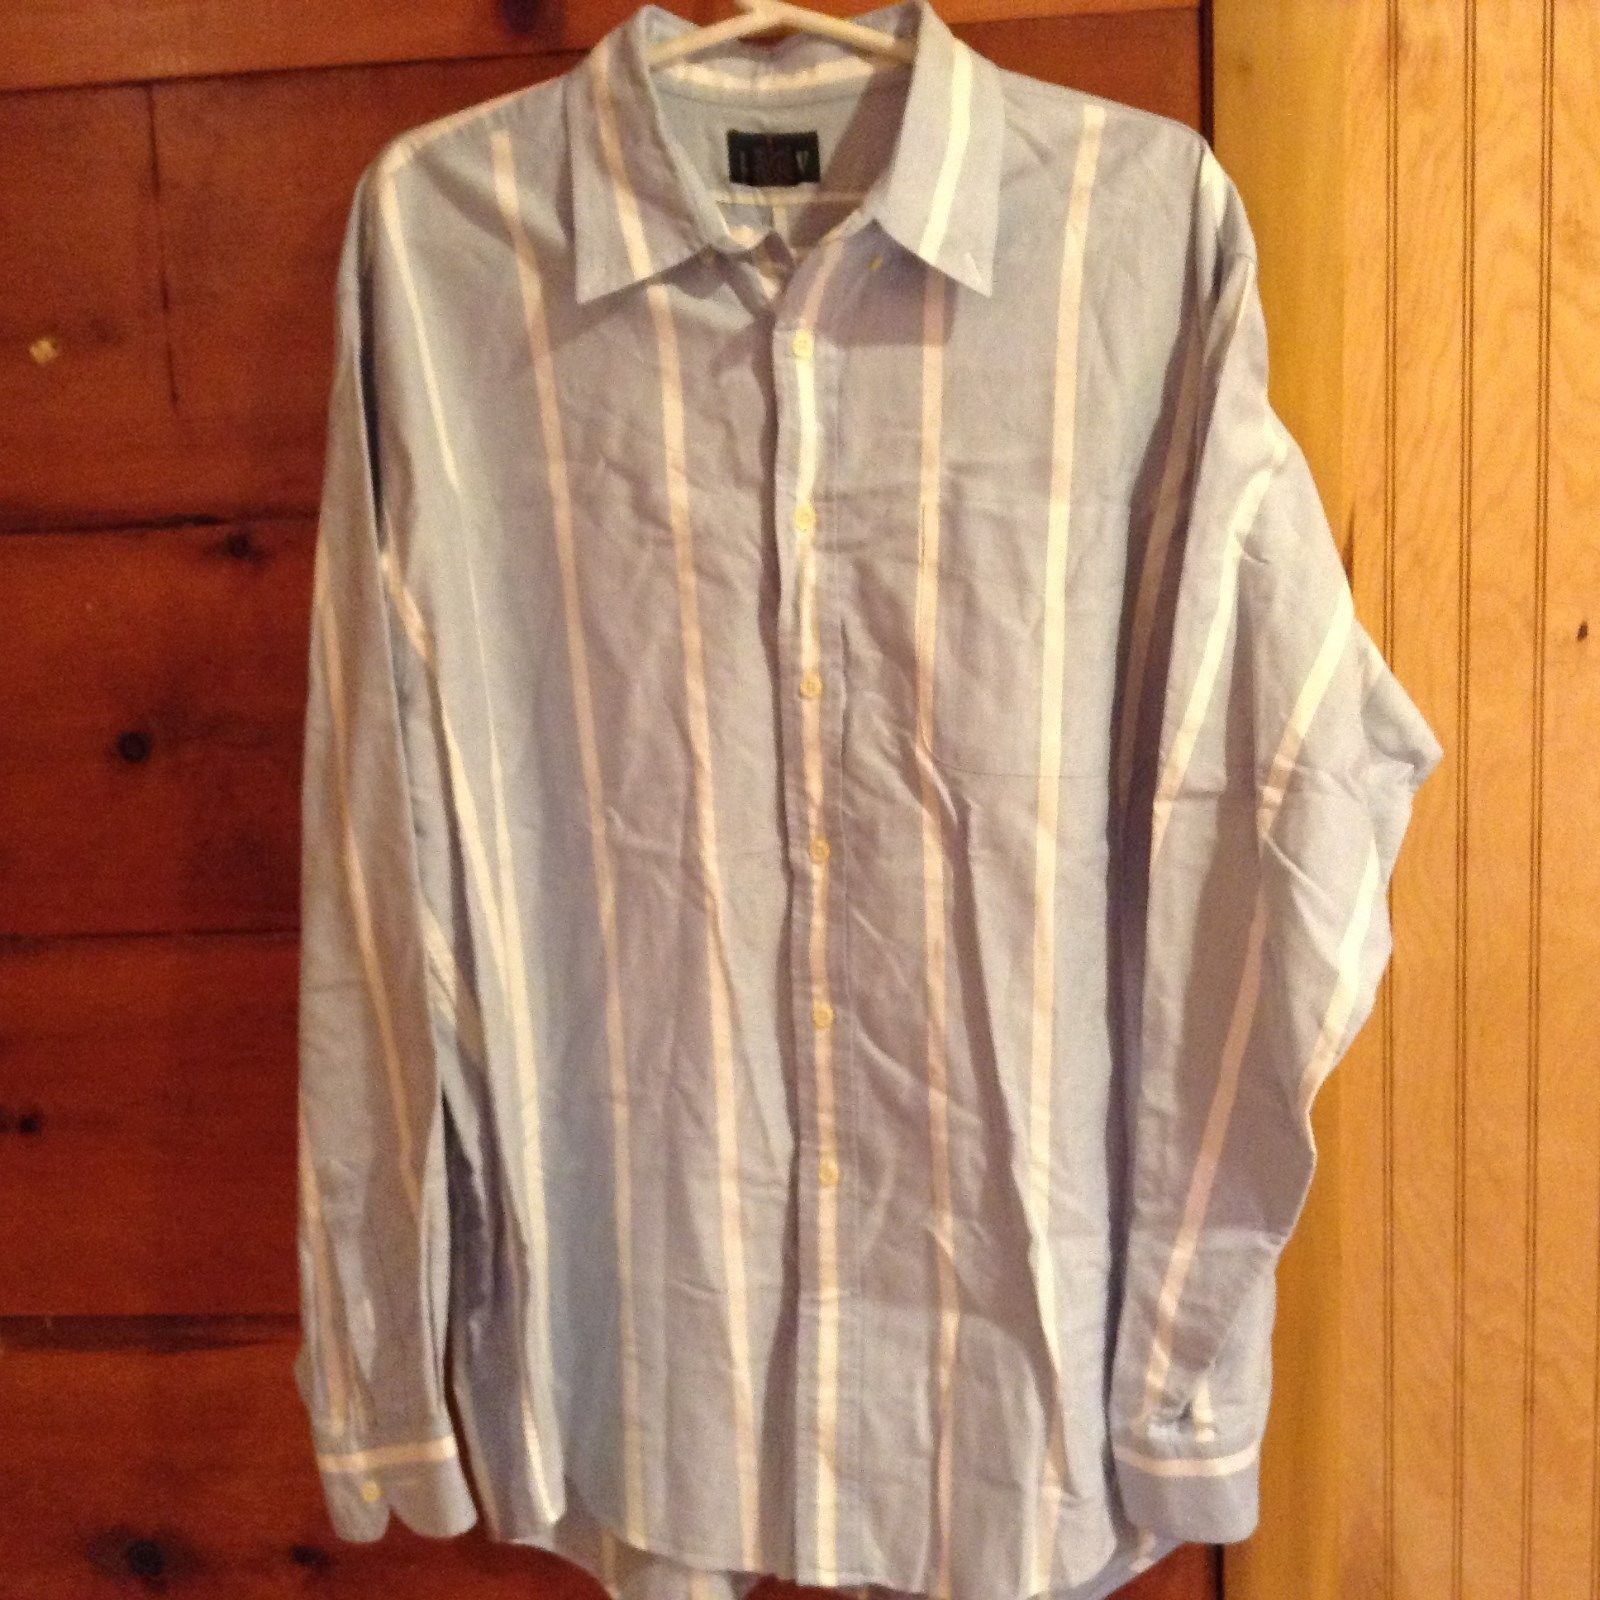 J Crew Button Down Long Sleeve Collared Blue and White Striped Shirt Size XL